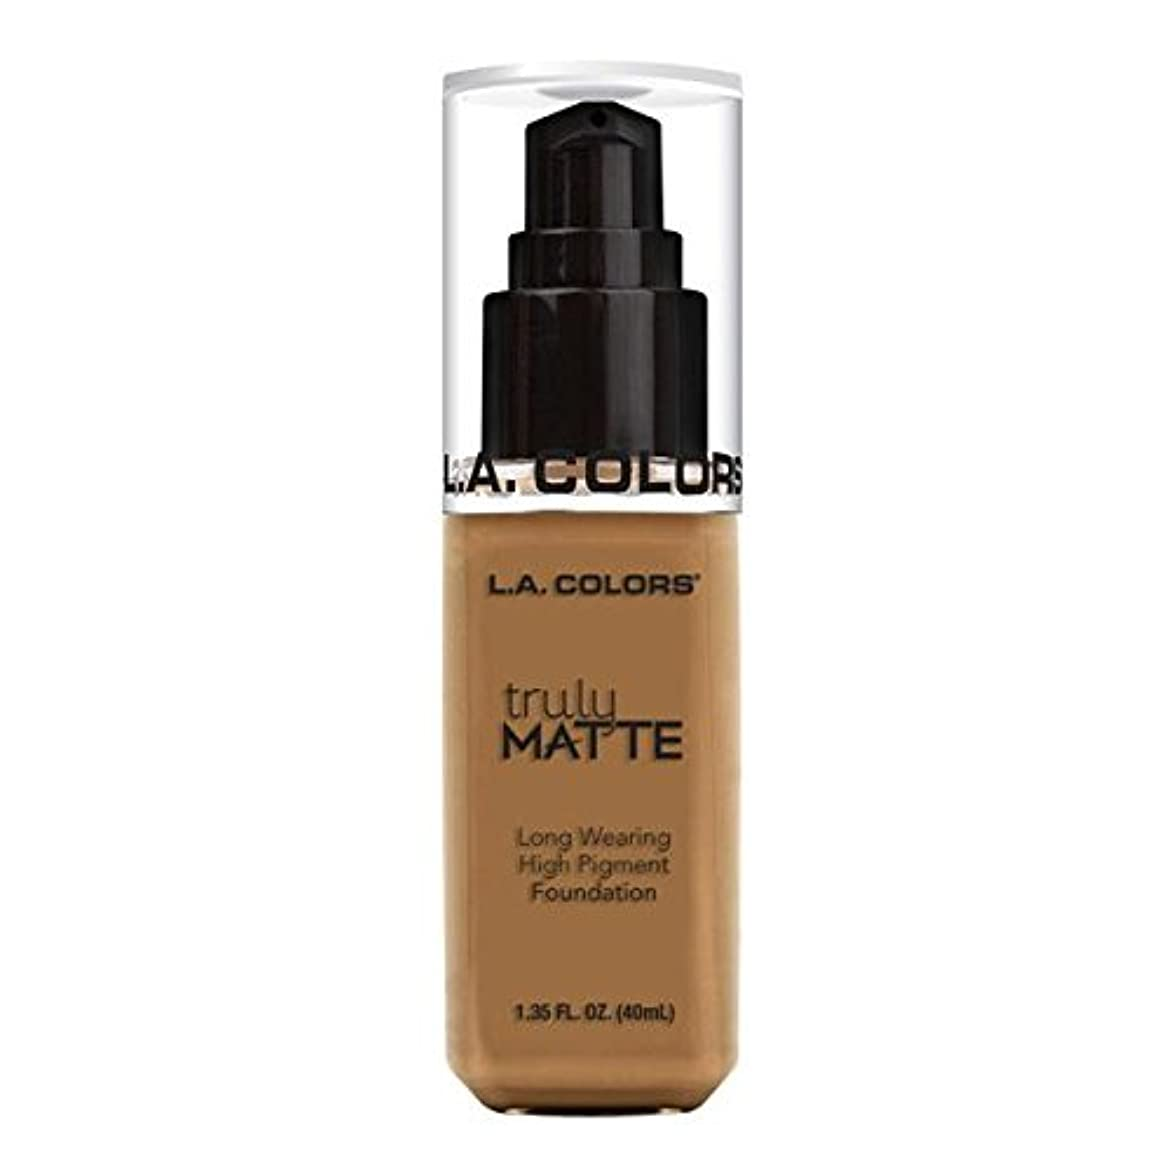 柔和ストレッチ欠陥(3 Pack) L.A. COLORS Truly Matte Foundation - Warm Caramel (並行輸入品)